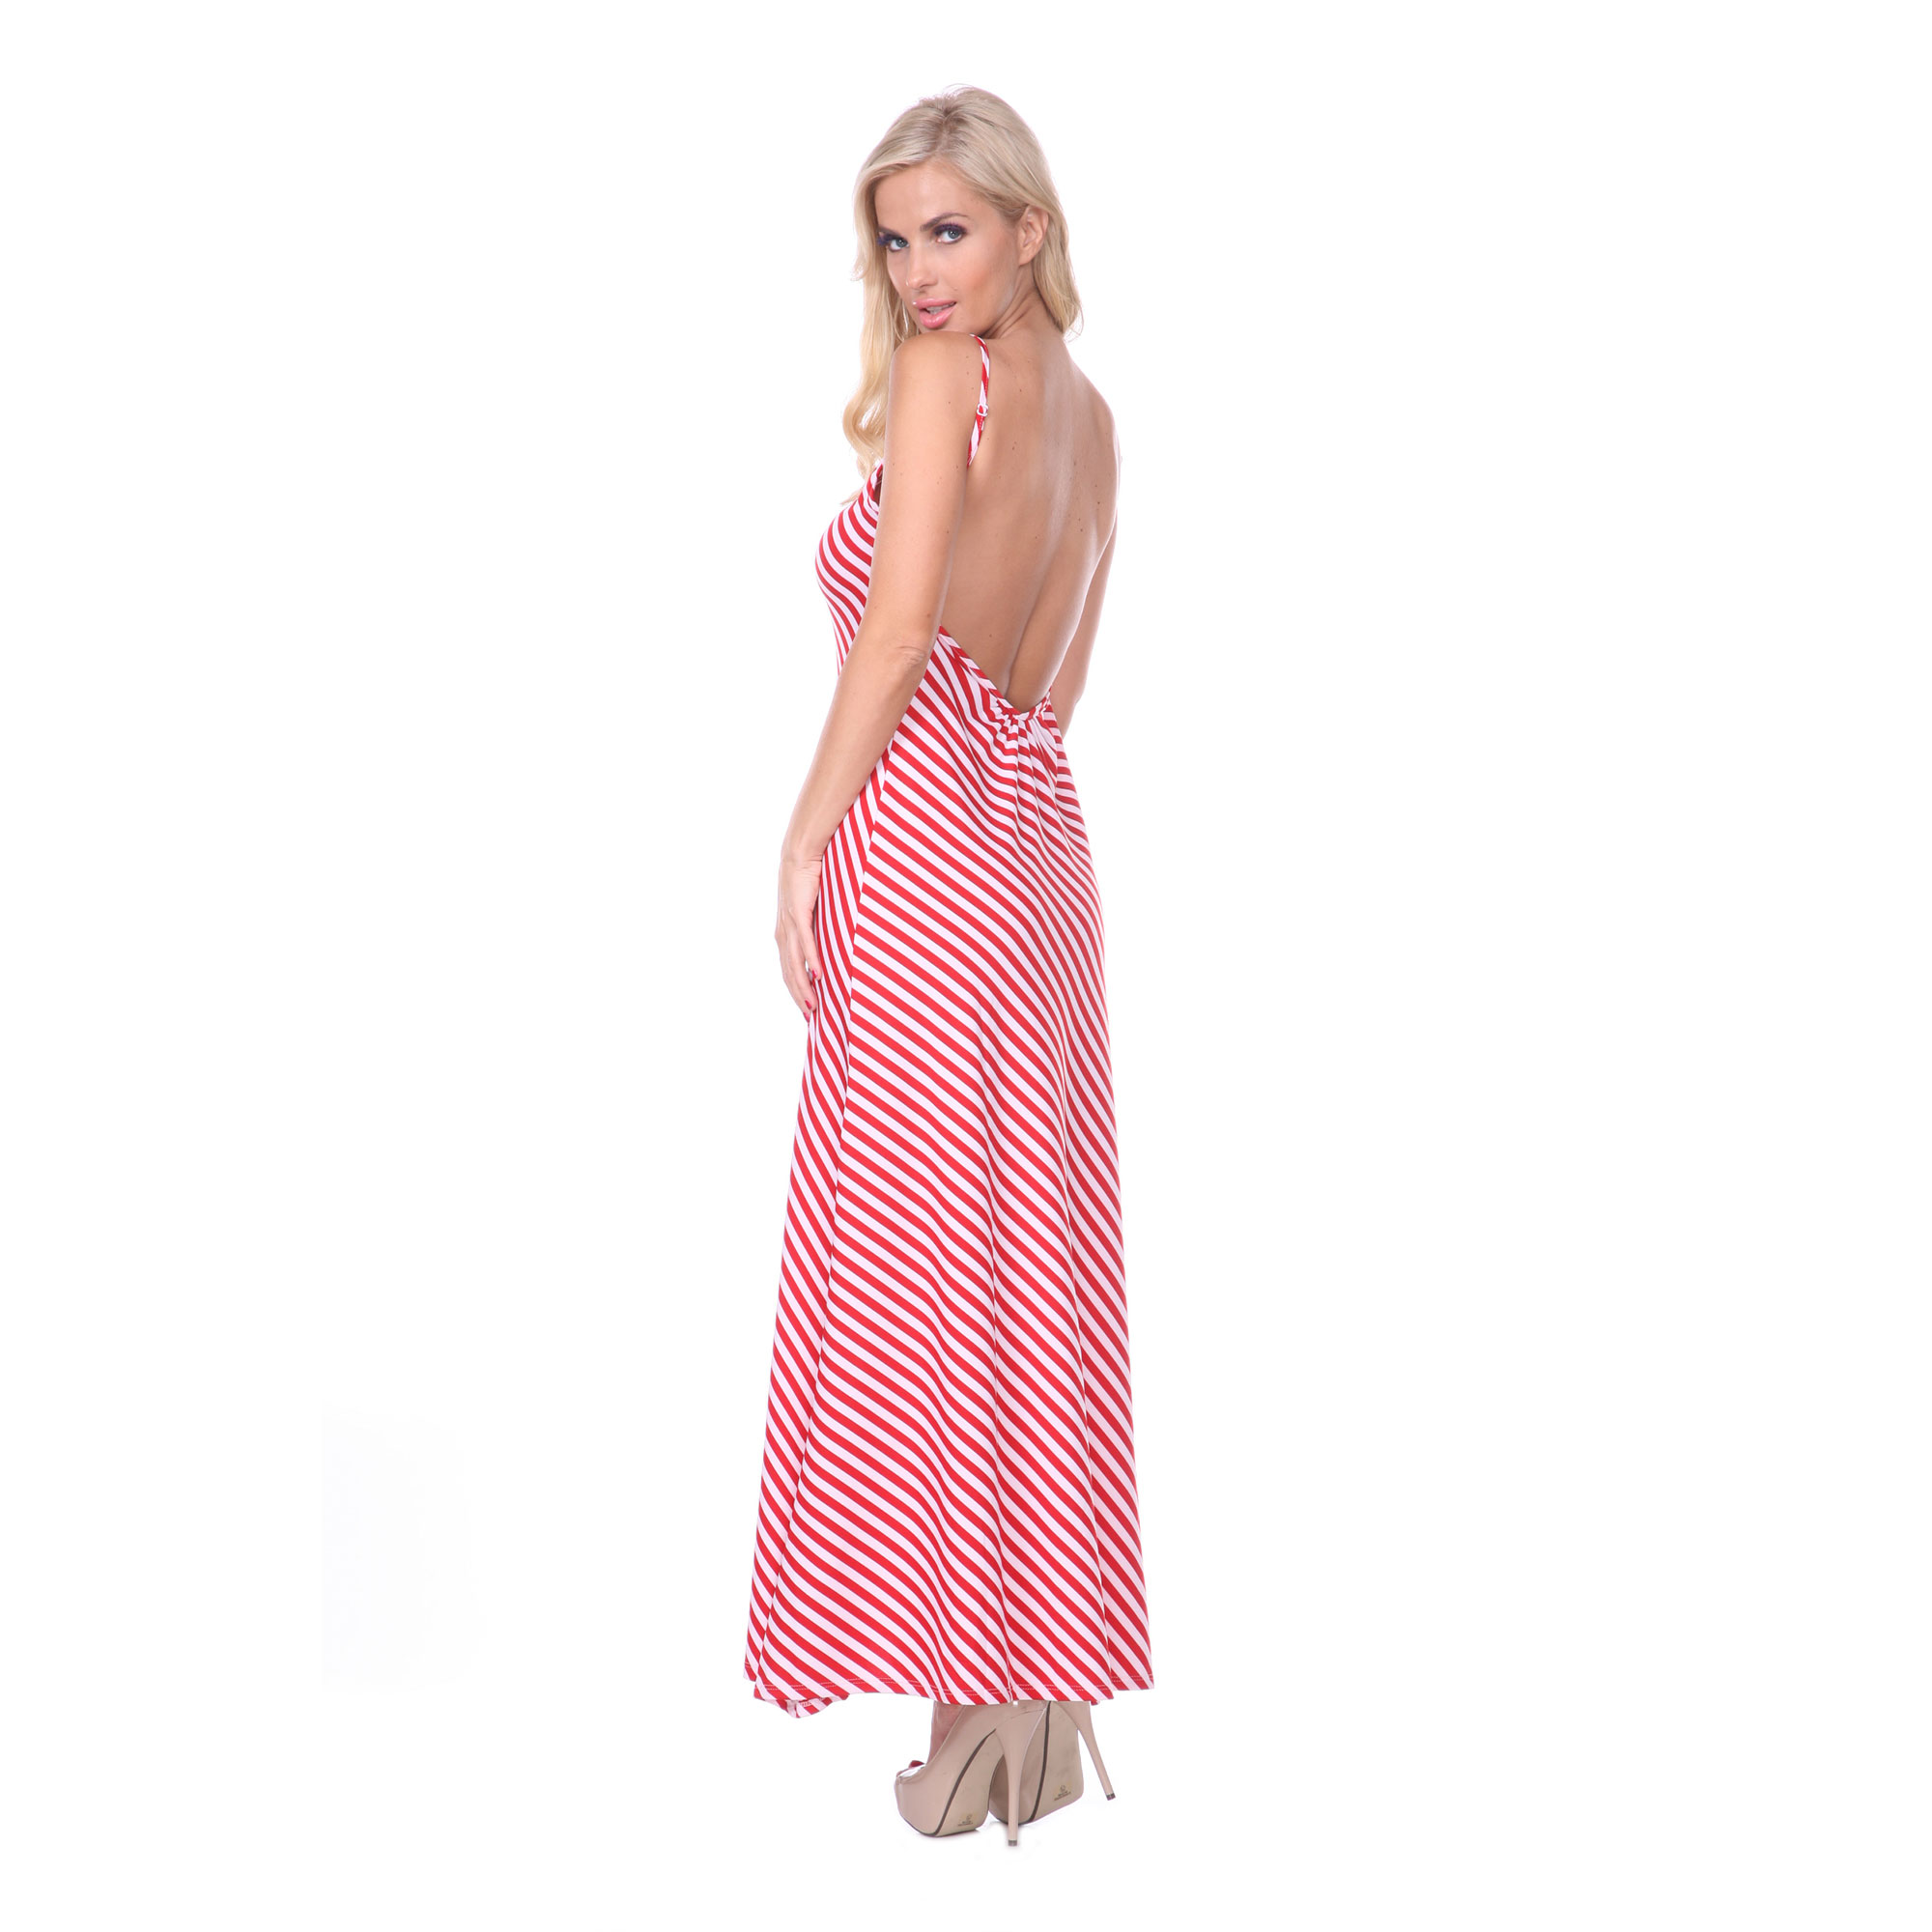 Backless Striped Maxi Dress - 4 Colors